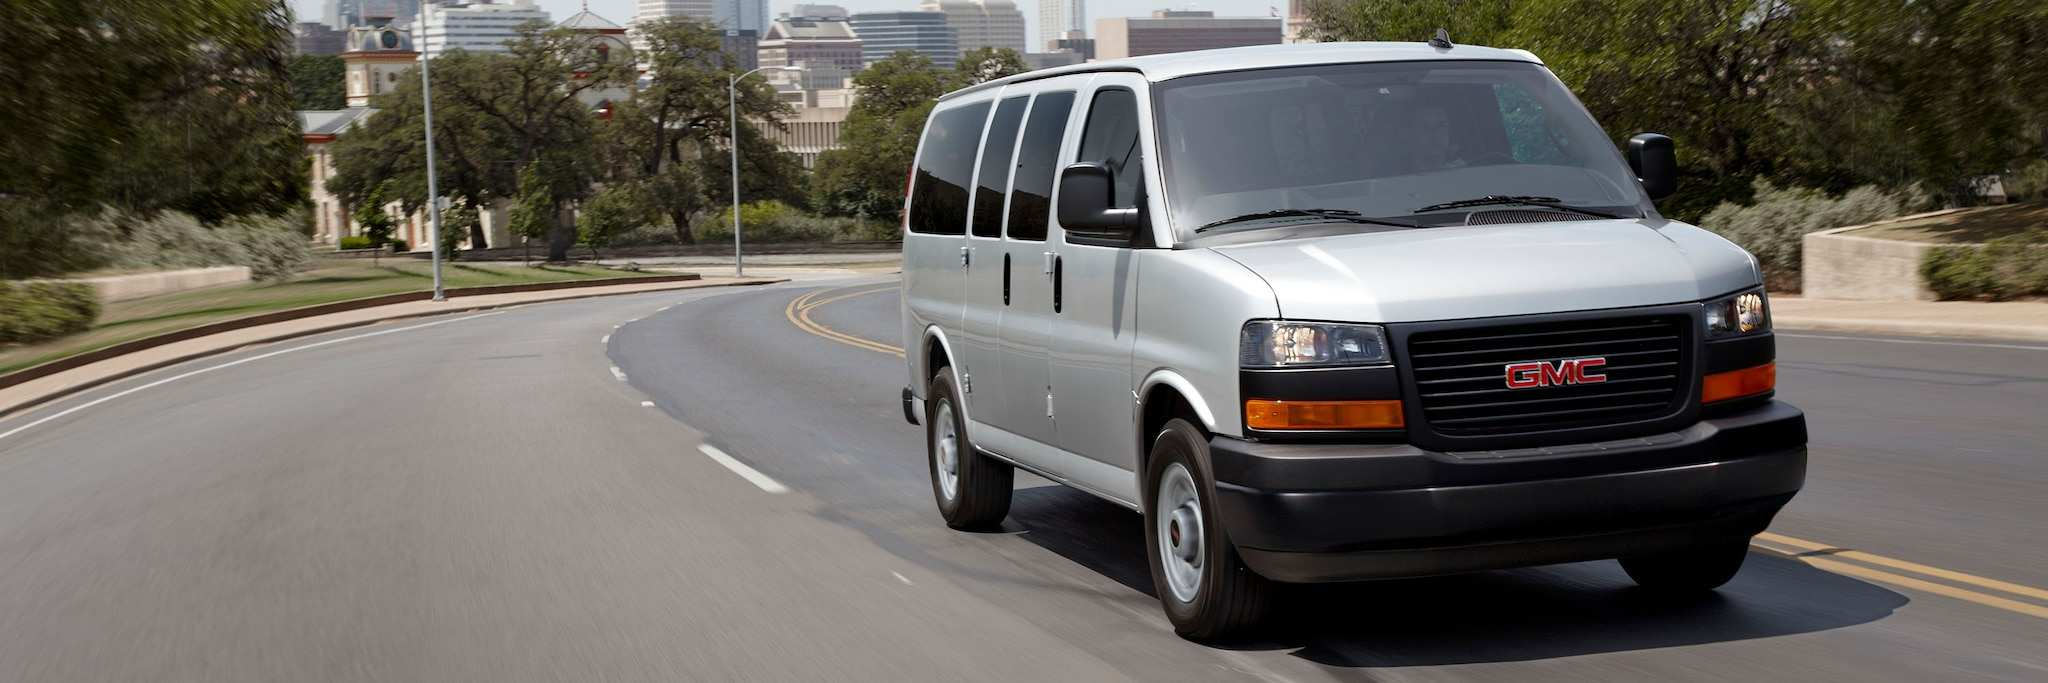 93 All New Gmc Van 2020 Prices